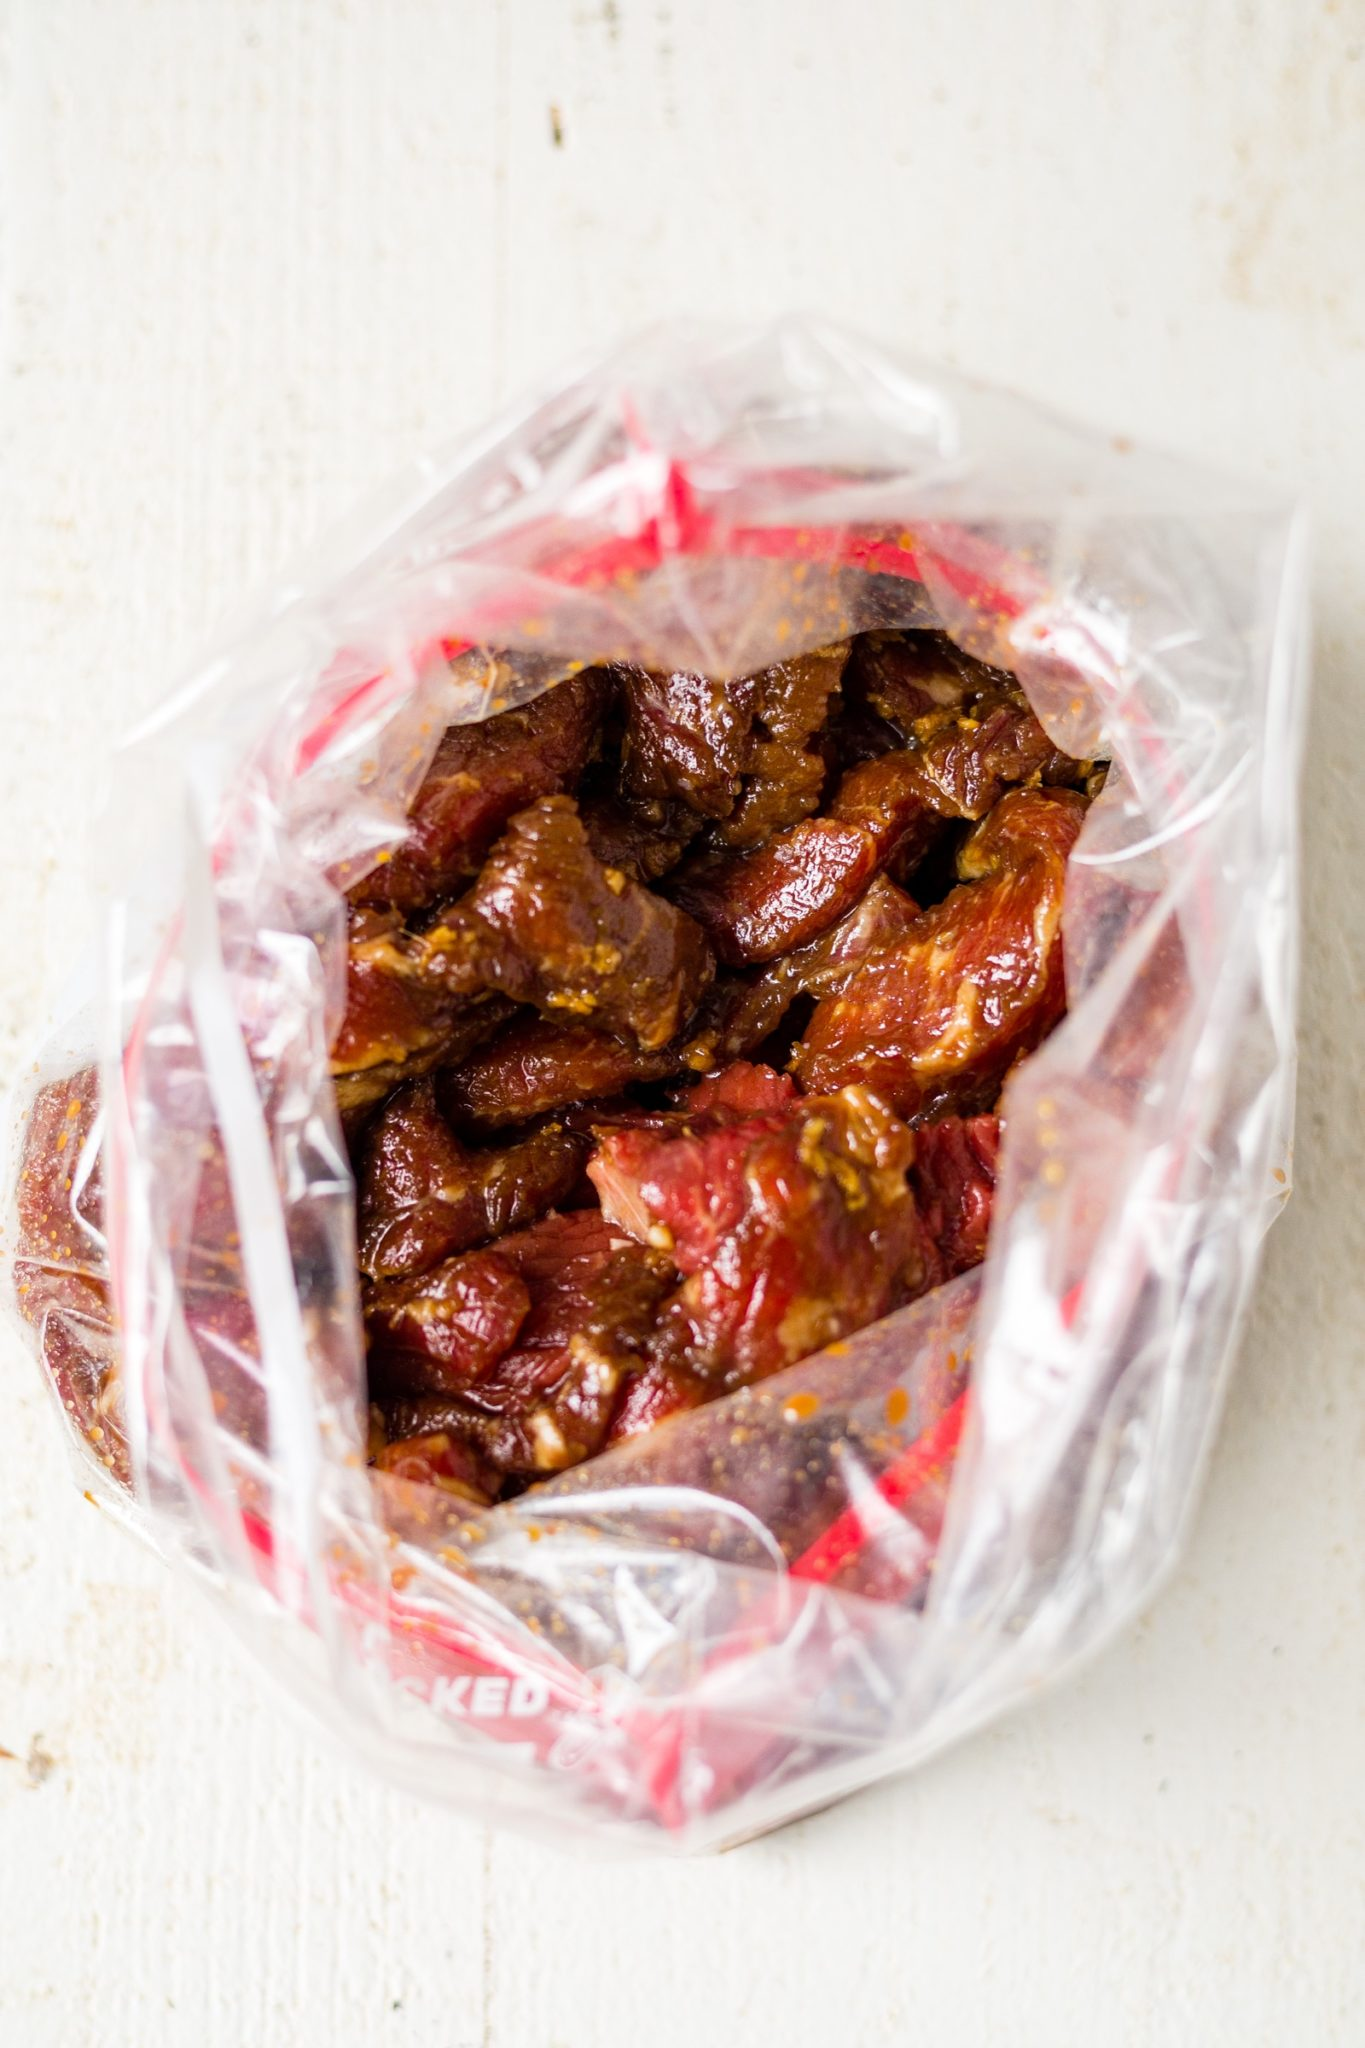 sirloin steak marinating in a freezer bag with soy sauce, ginger and garlic